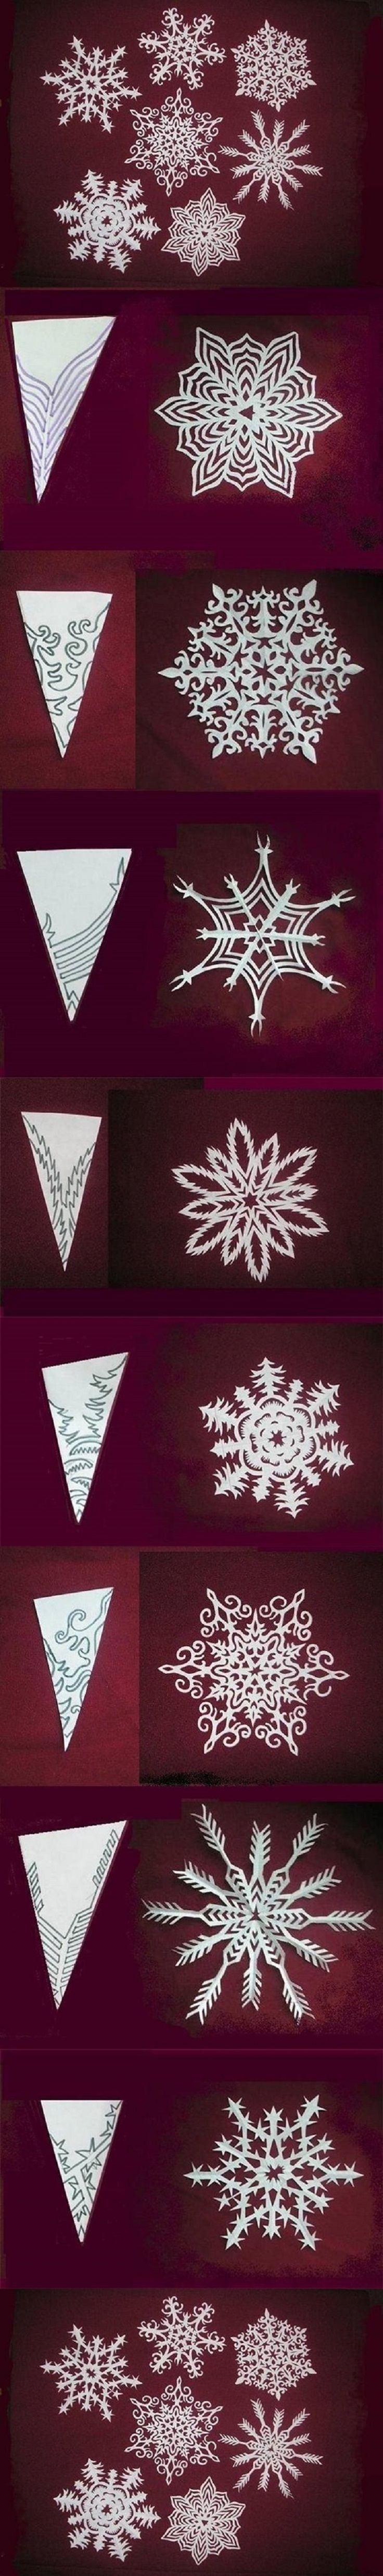 Make paper christmas decorations snowflakes - 25 Diy Christmas Ideas You Must Try In 2015